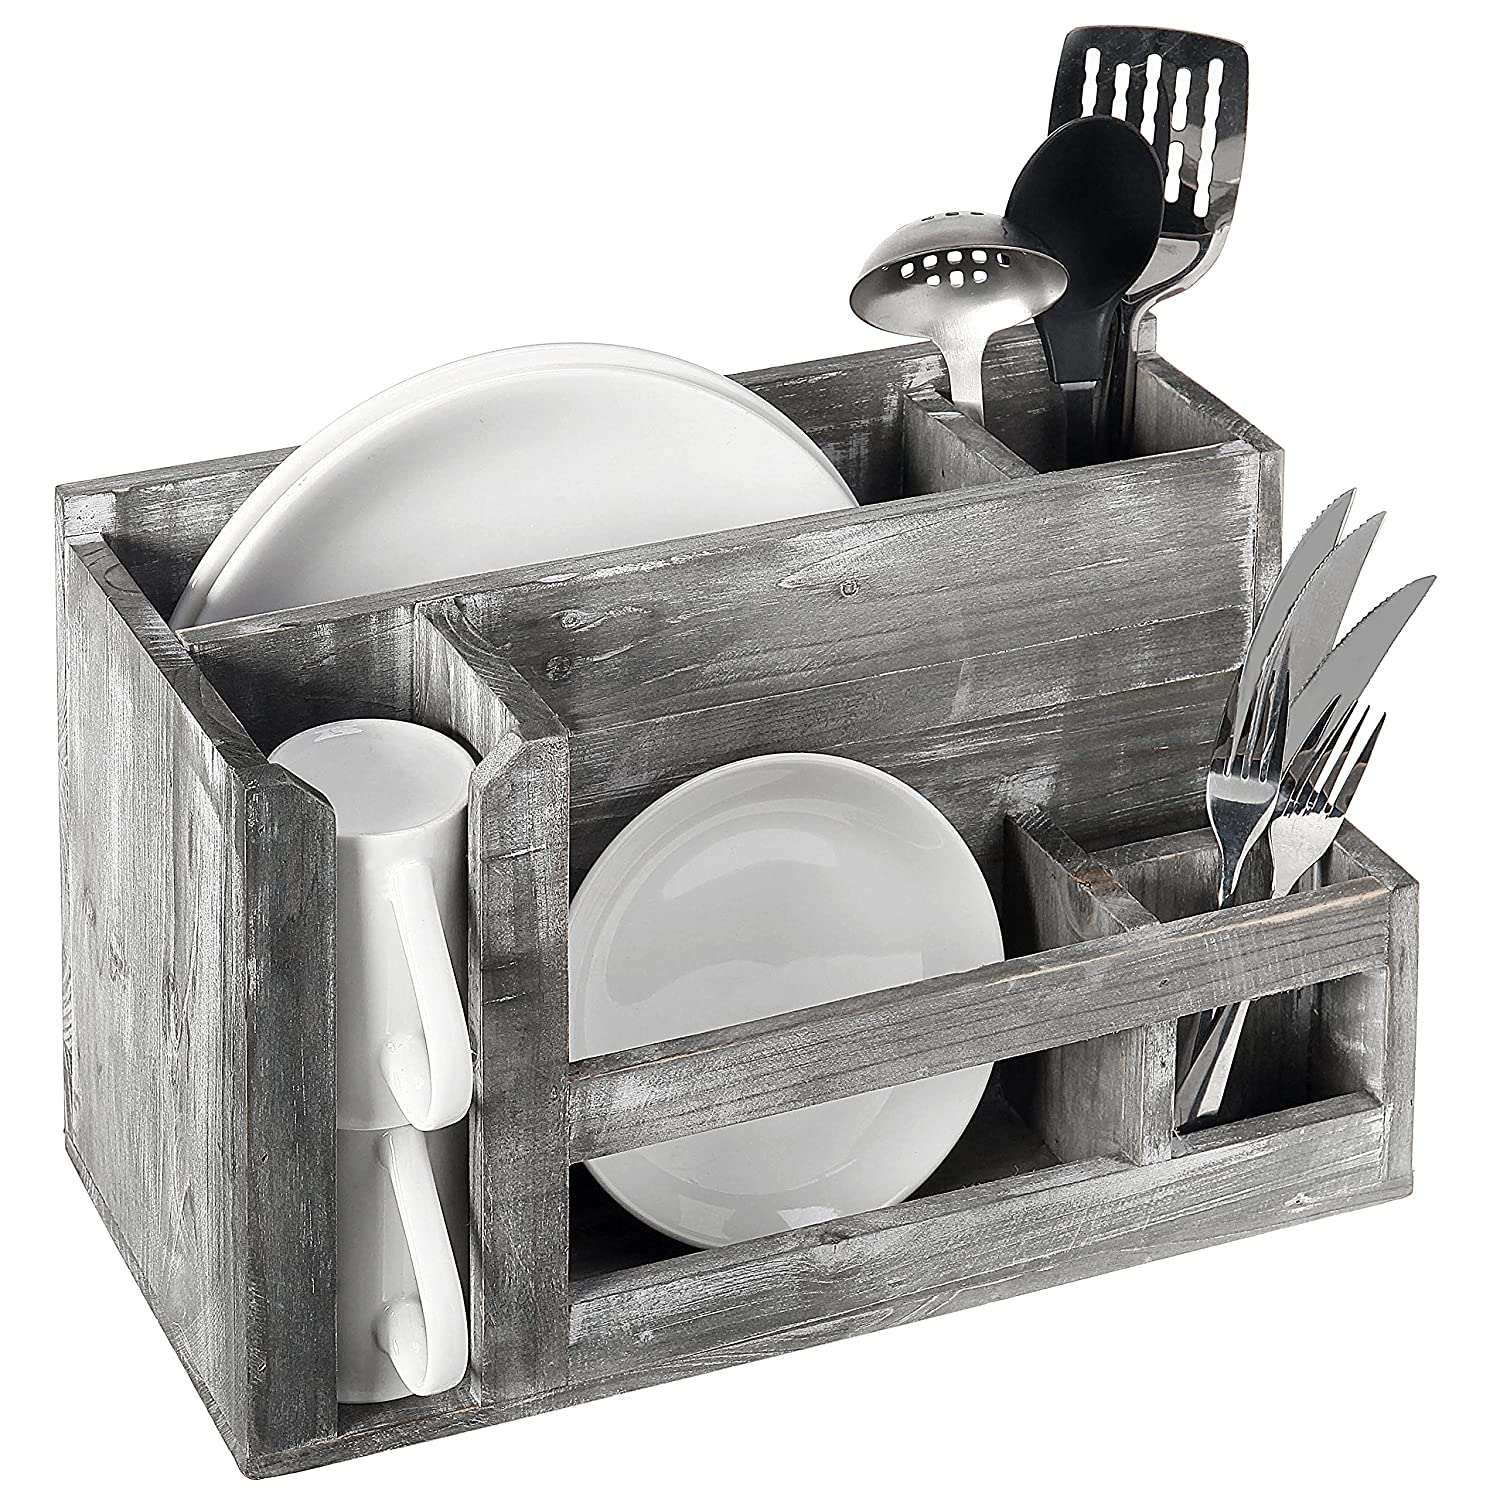 Barn Wood Gray Dish Rack & Utensil Caddy, Wall Mounted or Free Standing Plate Holder Kitchen Organizer MyGift